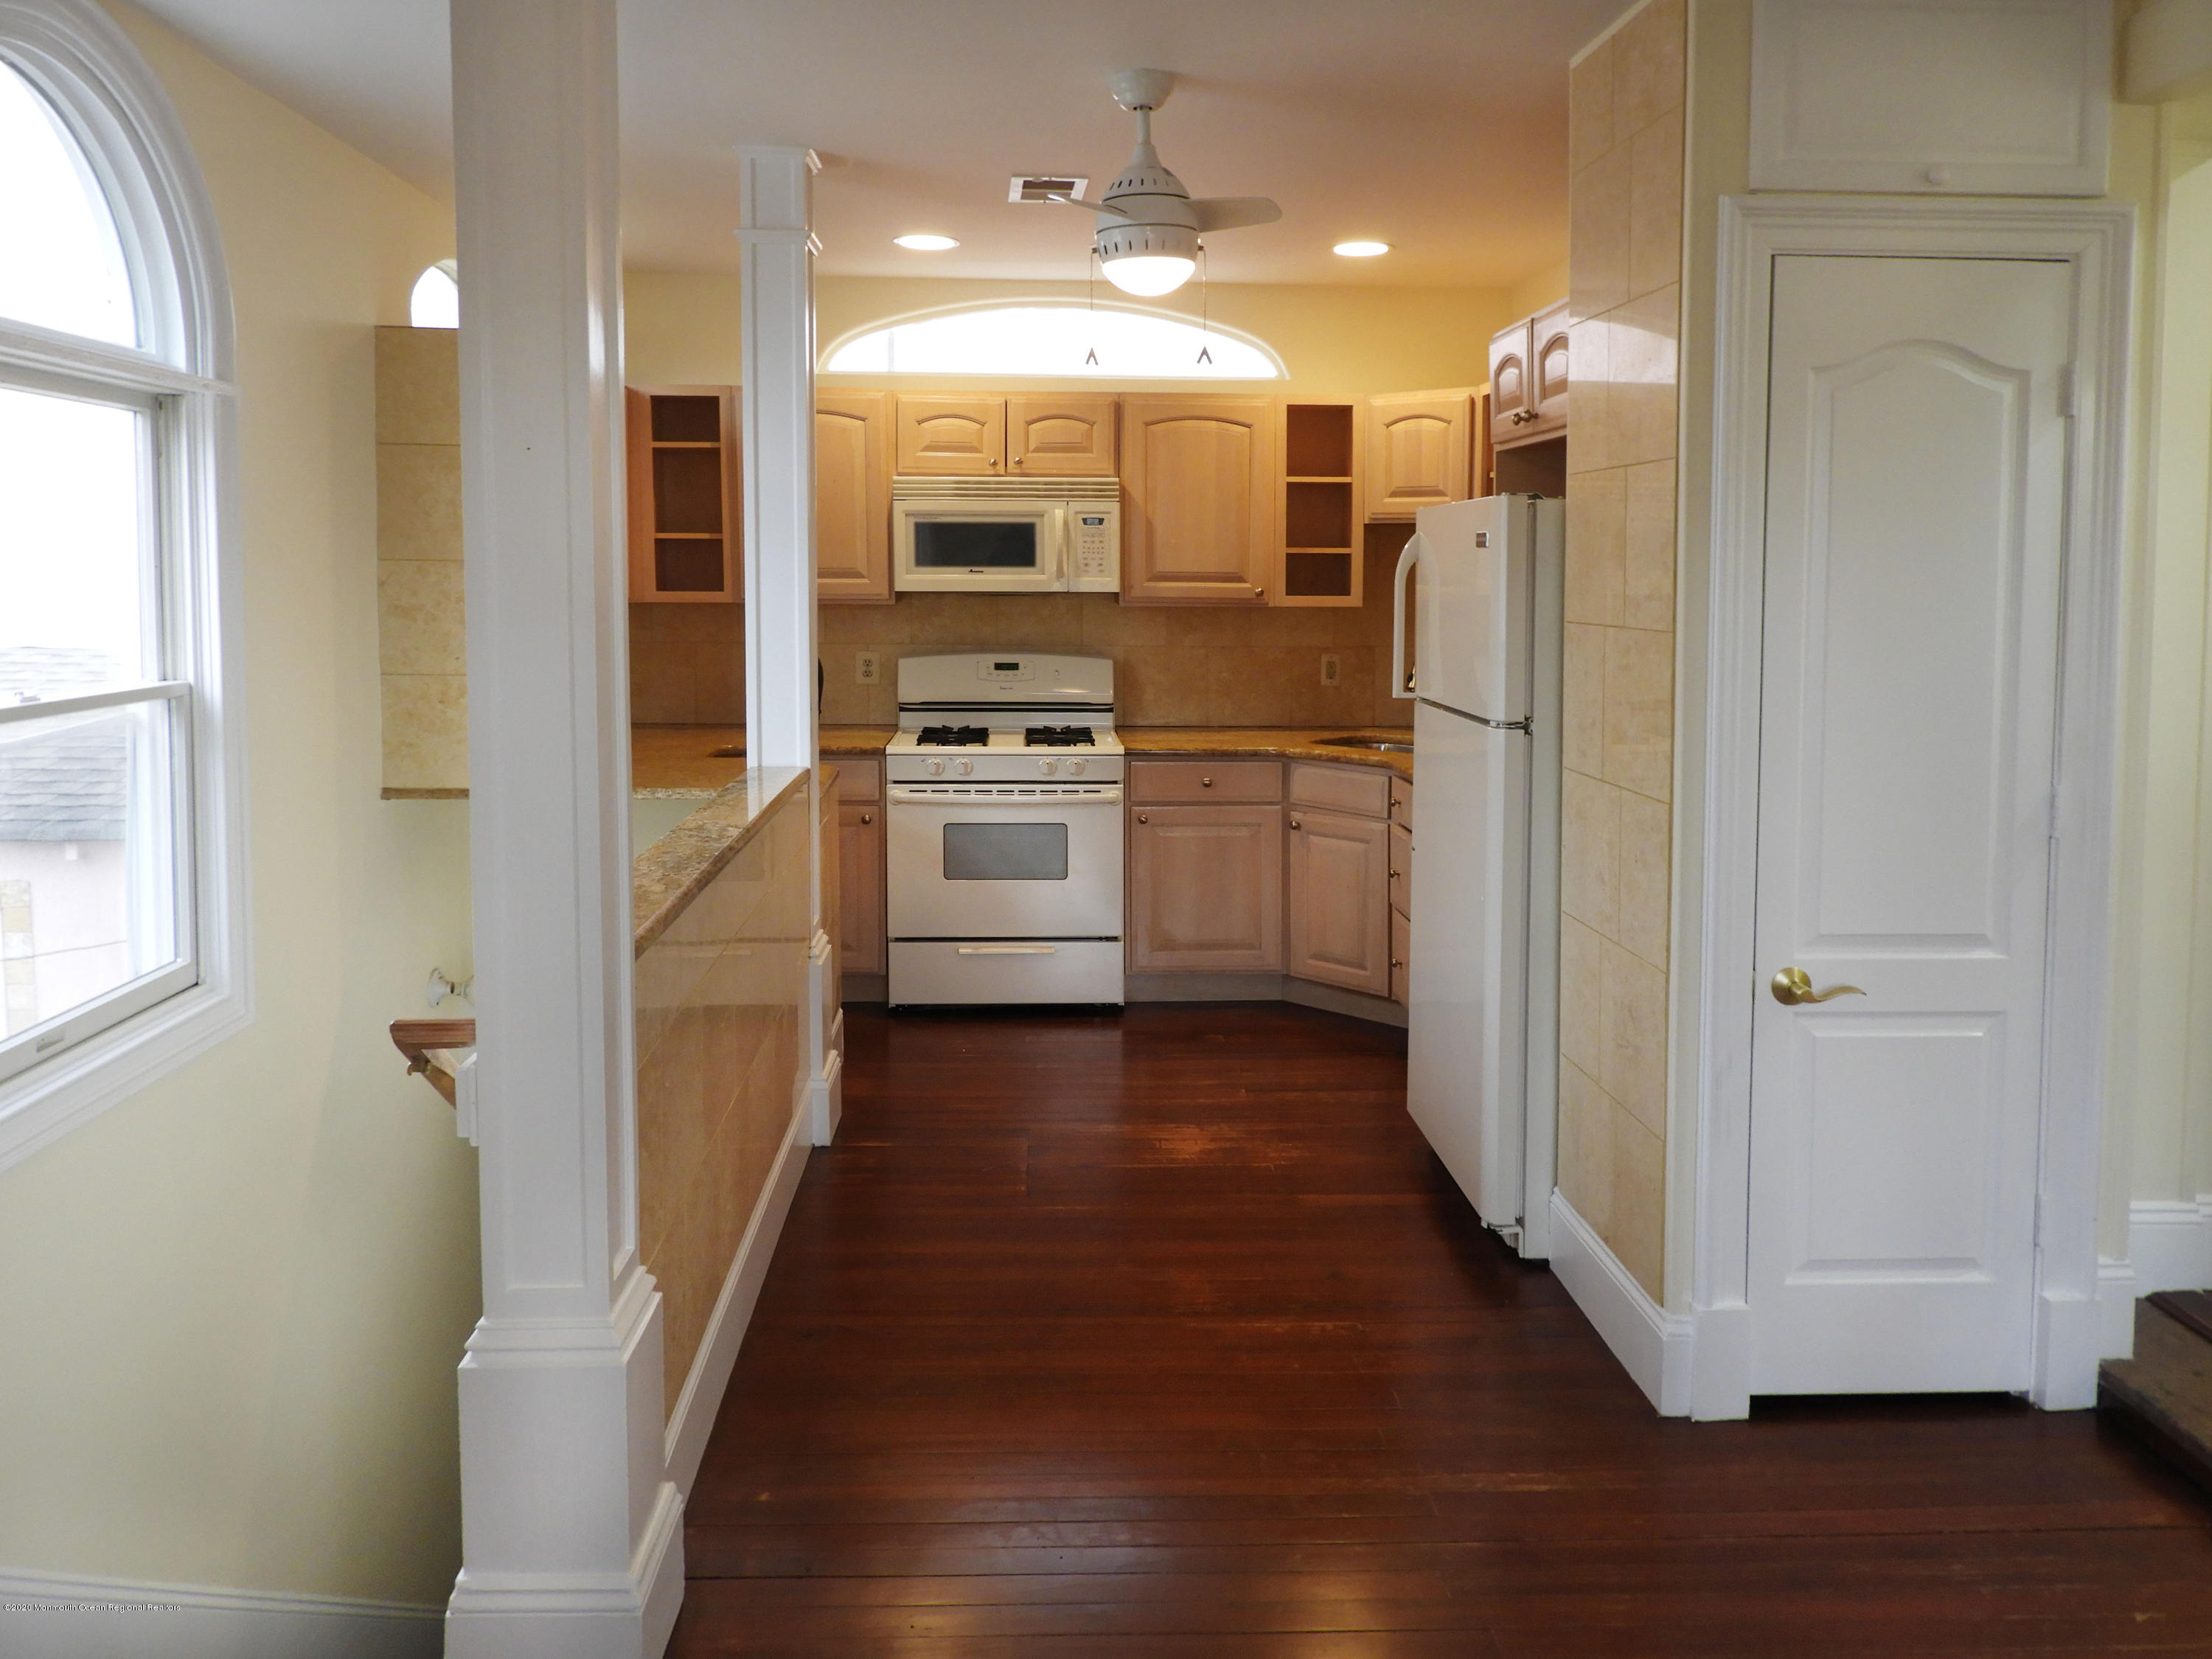 Freshly renovated 2 bedroom apartment with Lake views and offstreet parking for one car. Laundry on premises. Use of spacious backyard. Kitchen with Granite Counters and newer appliances, microwave and dishwasher to be replaced. Plenty of closet space. Separate private entrance. one small pet considered. Walk to the beach and Asbury nightlife.  Credit check required, call Mark at 646-298-4362 for easy showing.